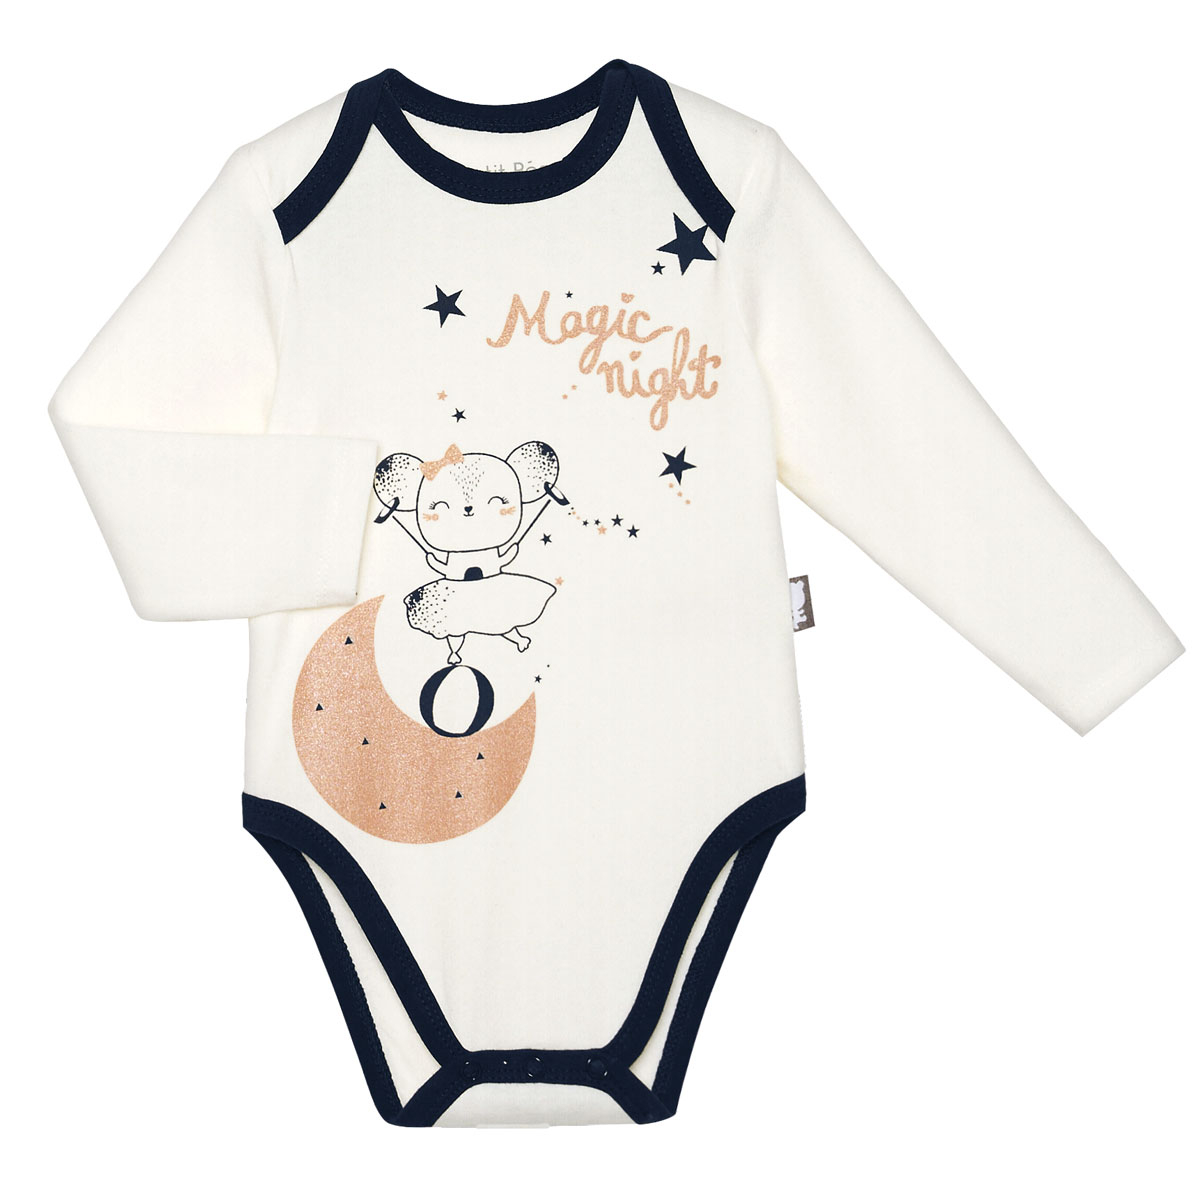 Lot de 2 bodies bébé fille manches longues Magic Night à paillettes